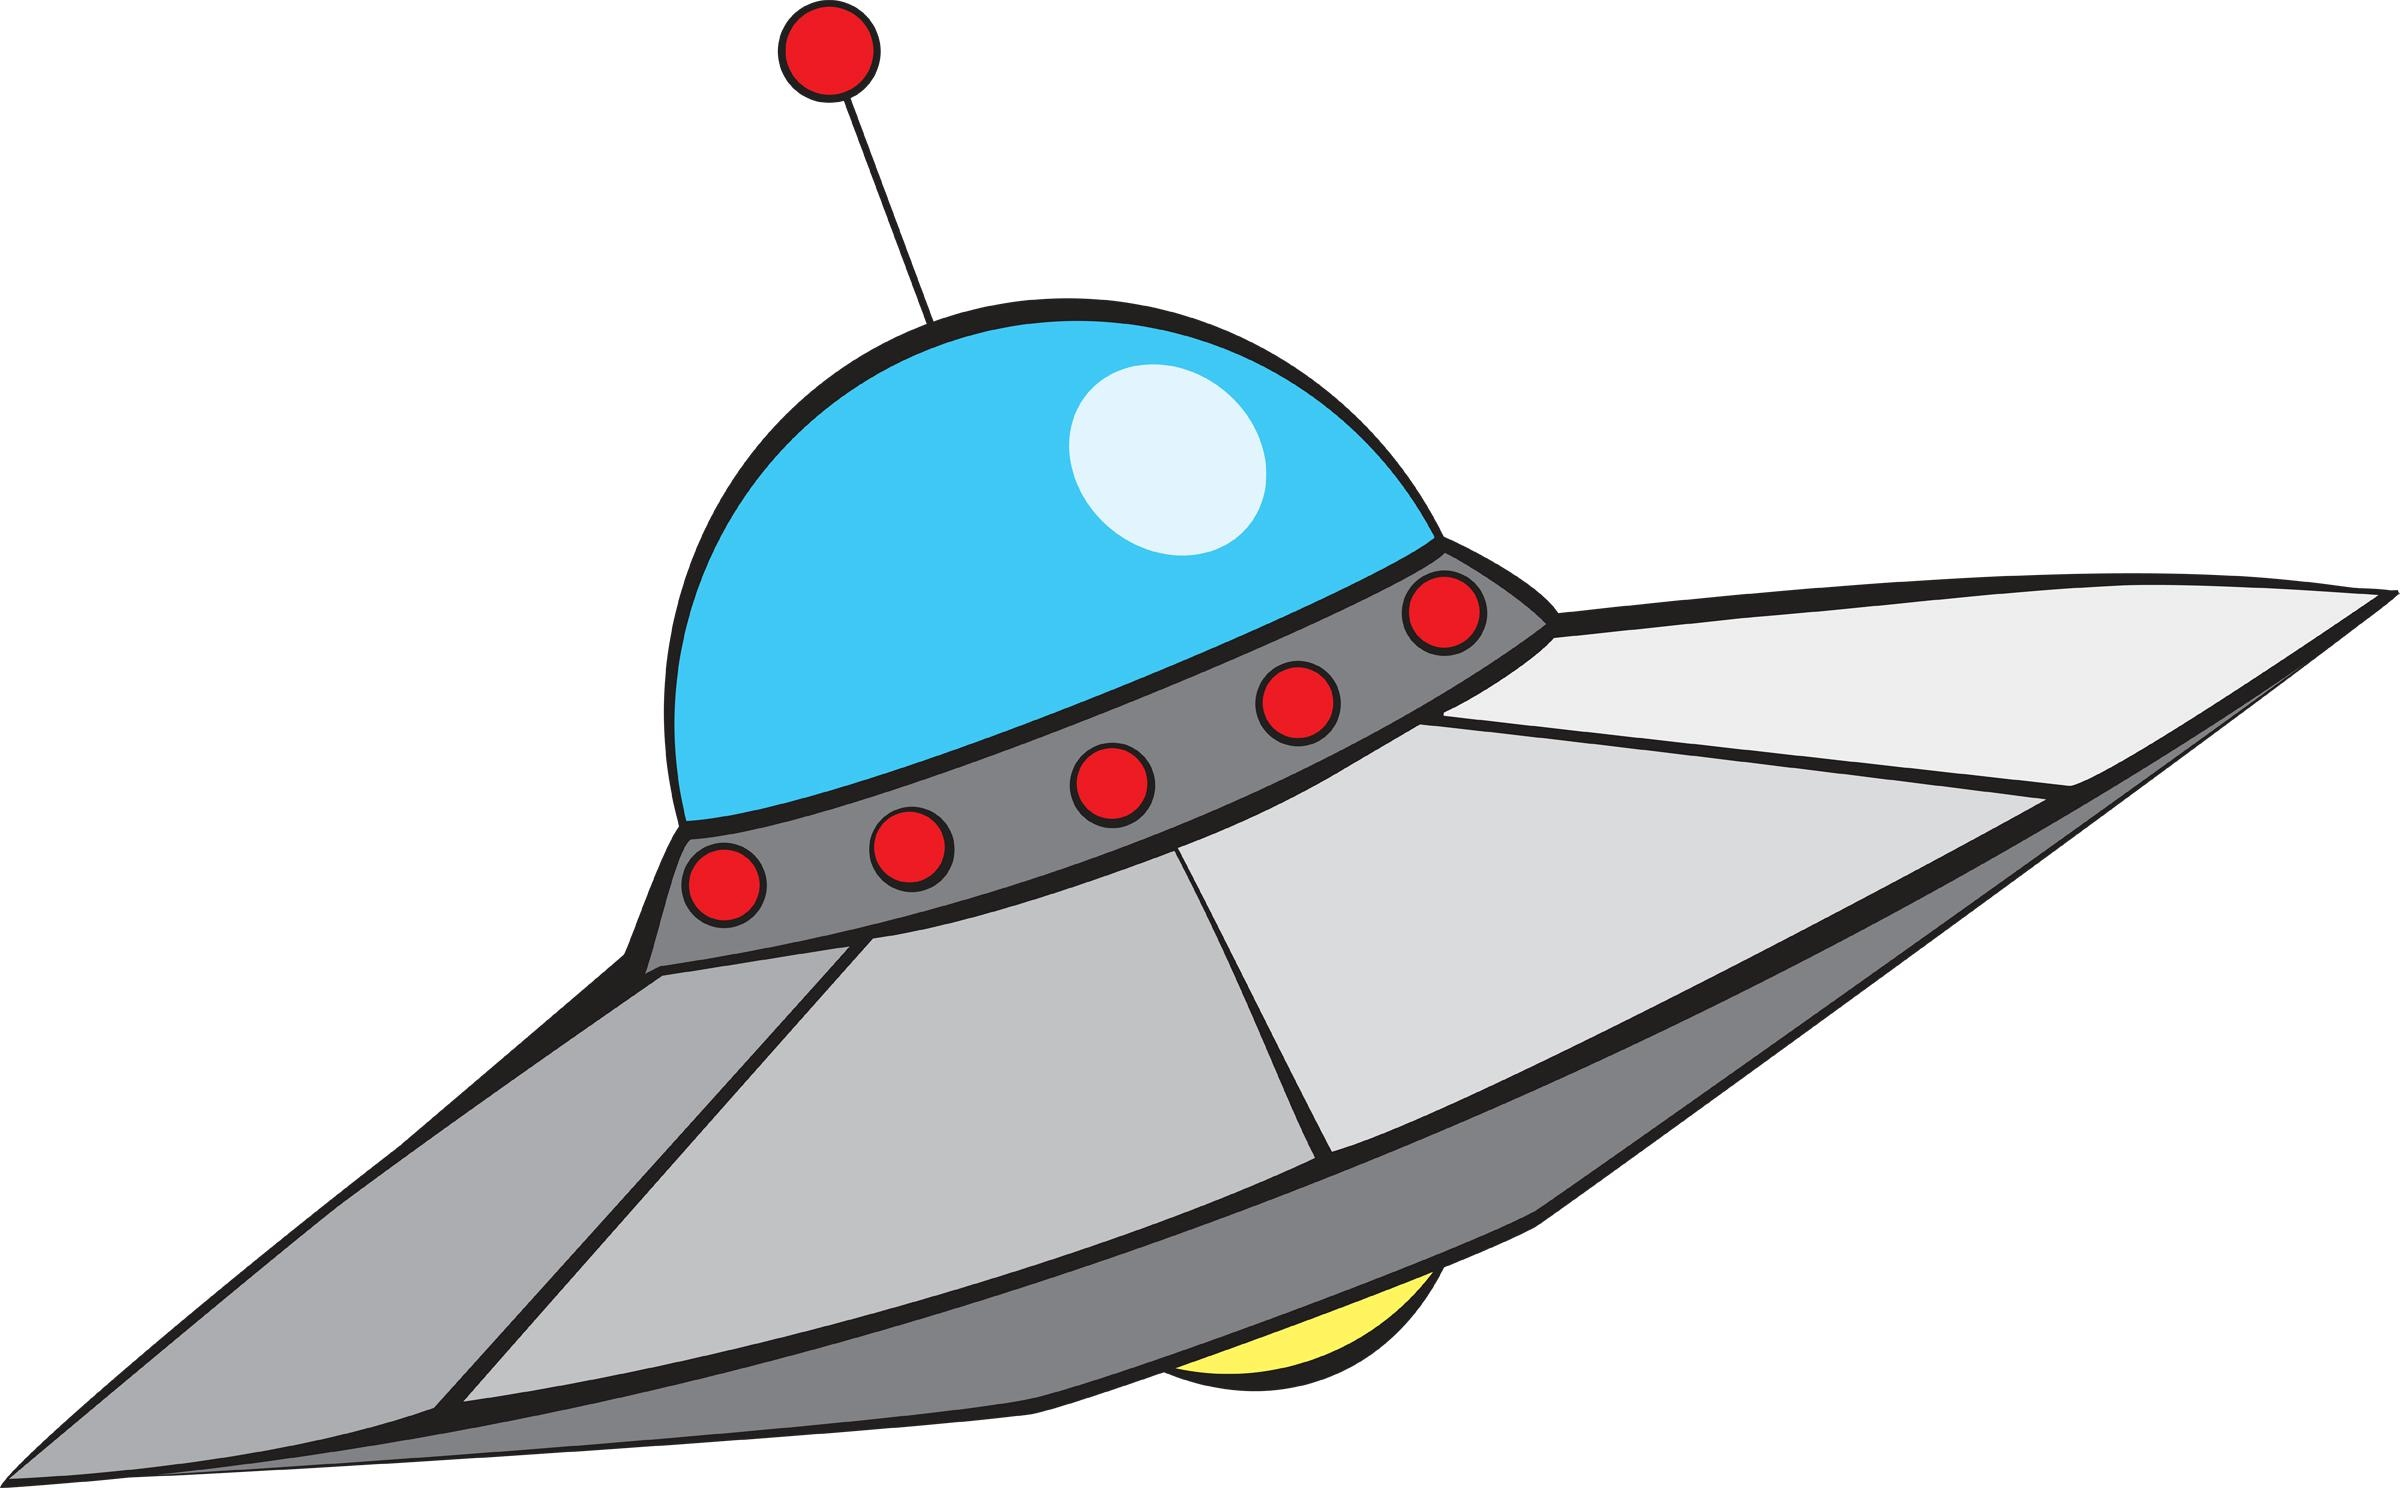 Silhouette at getdrawings com. Spaceship clipart